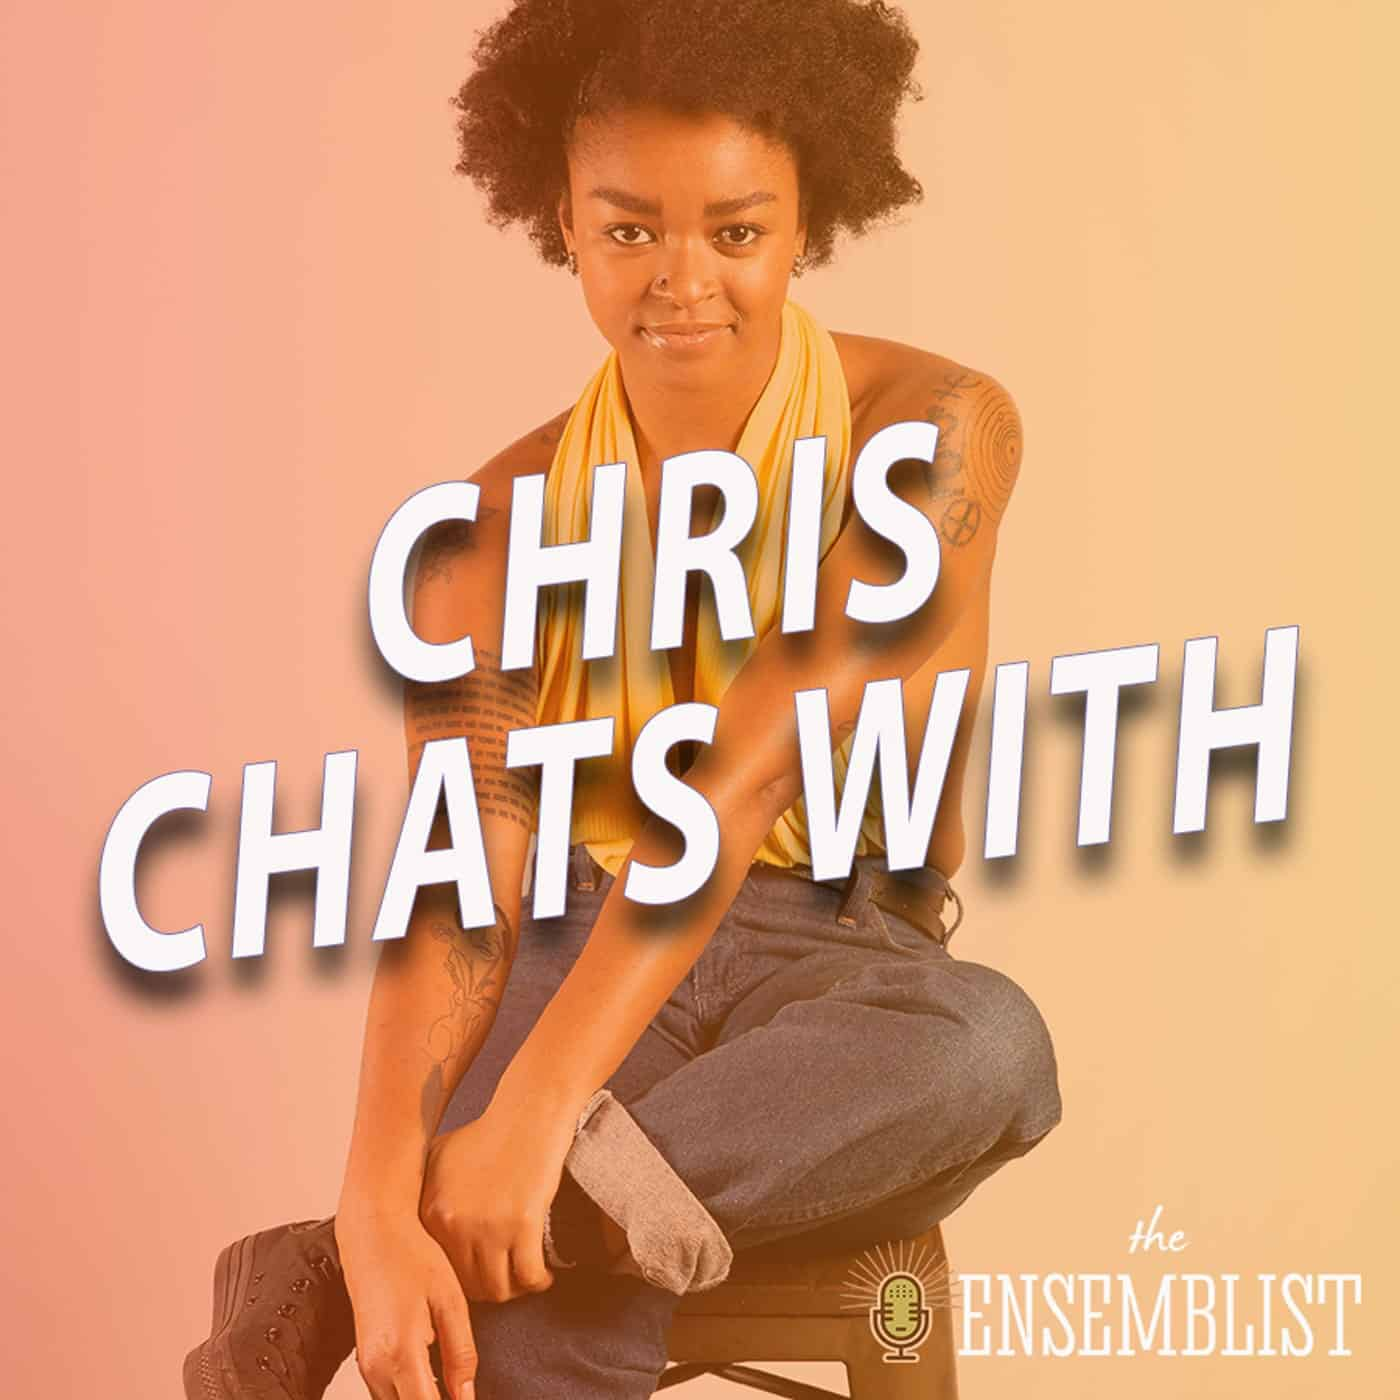 #499 - Chris Chats With (Actors Equity Association)